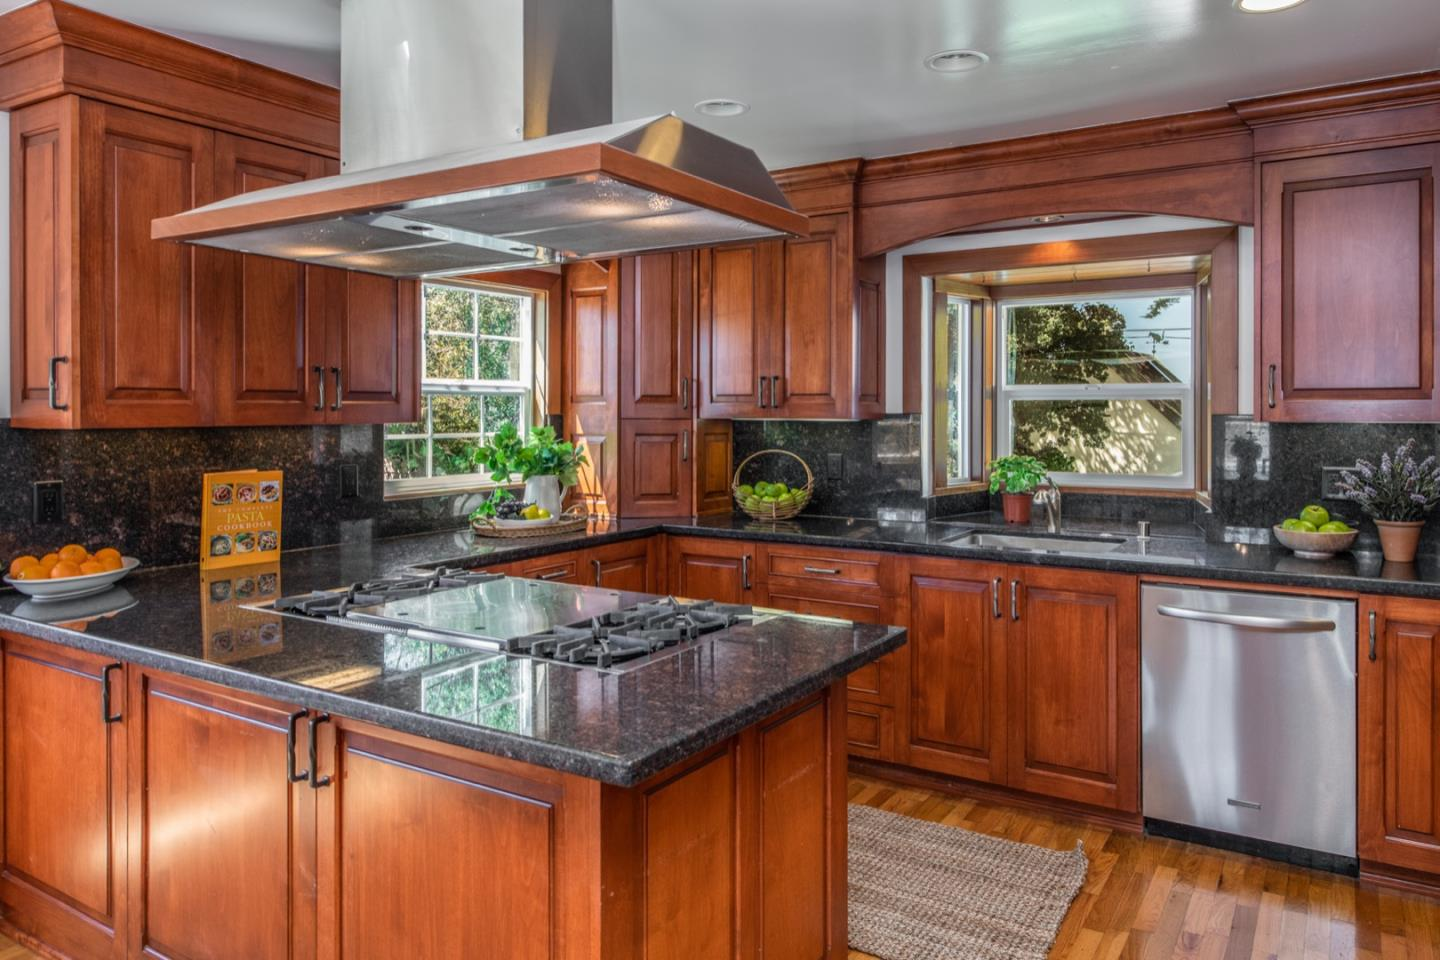 626 Hillcrest AVE Pacific Grove, CA 93950